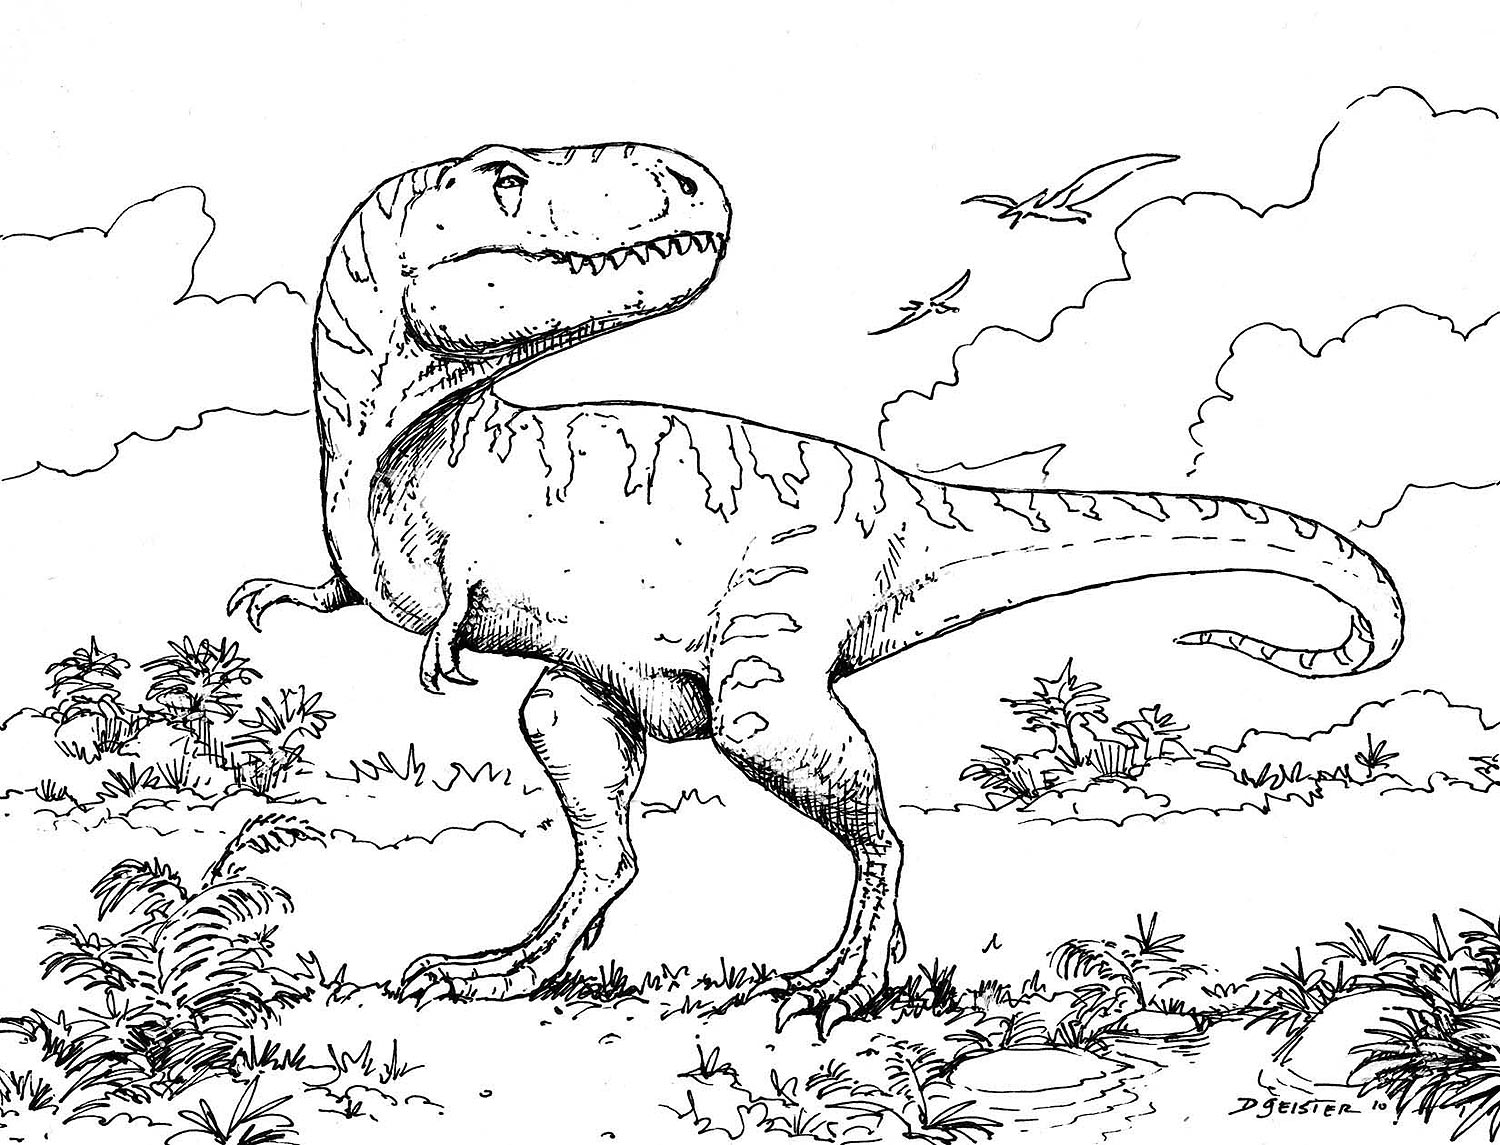 dinosaurs coloring pages printable colormecrazyorg dinosaur train coloring pages pages printable coloring dinosaurs